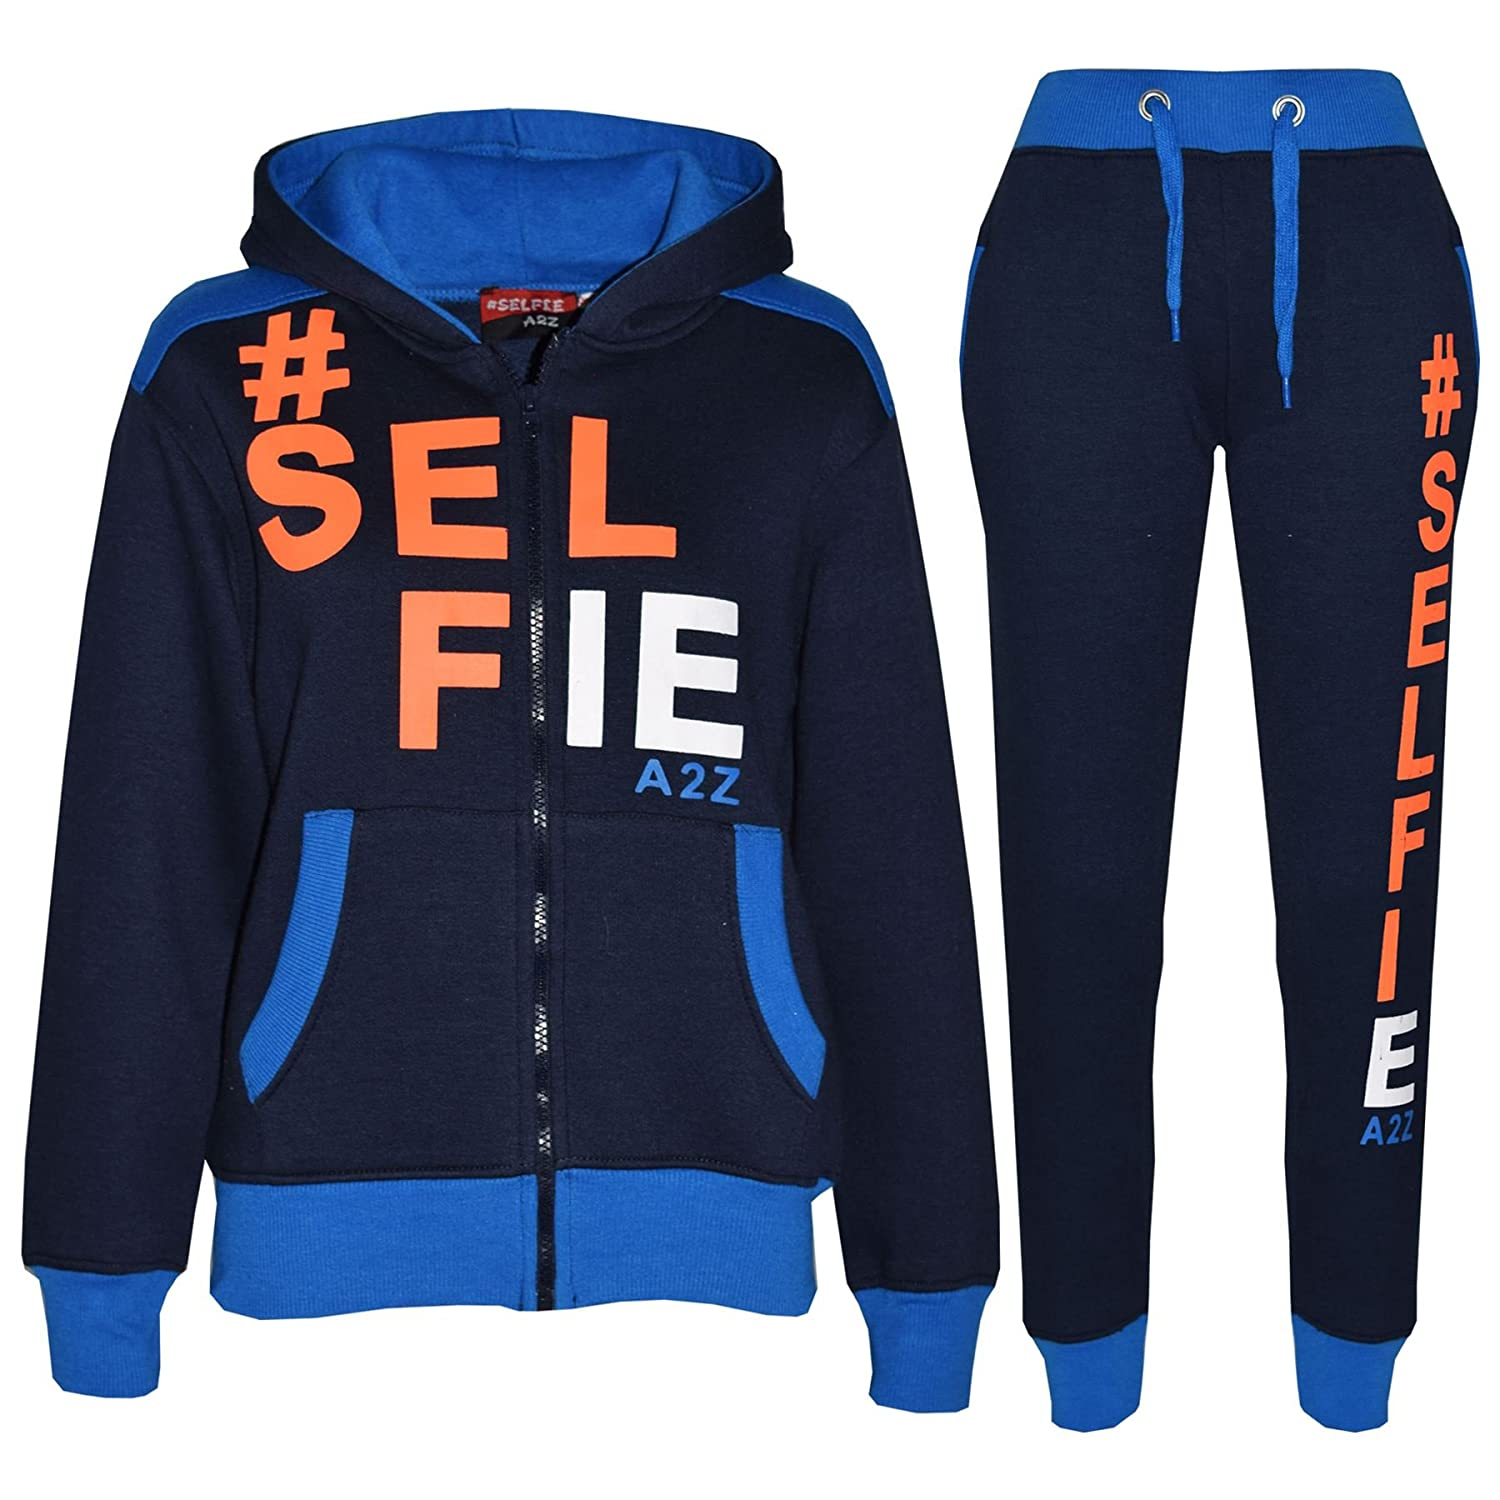 A2Z 4 Kids Girls Boys #Selfie Tracksuit Hooded Hoodie Bottom Jog Suit Joggers 7-13 Yr